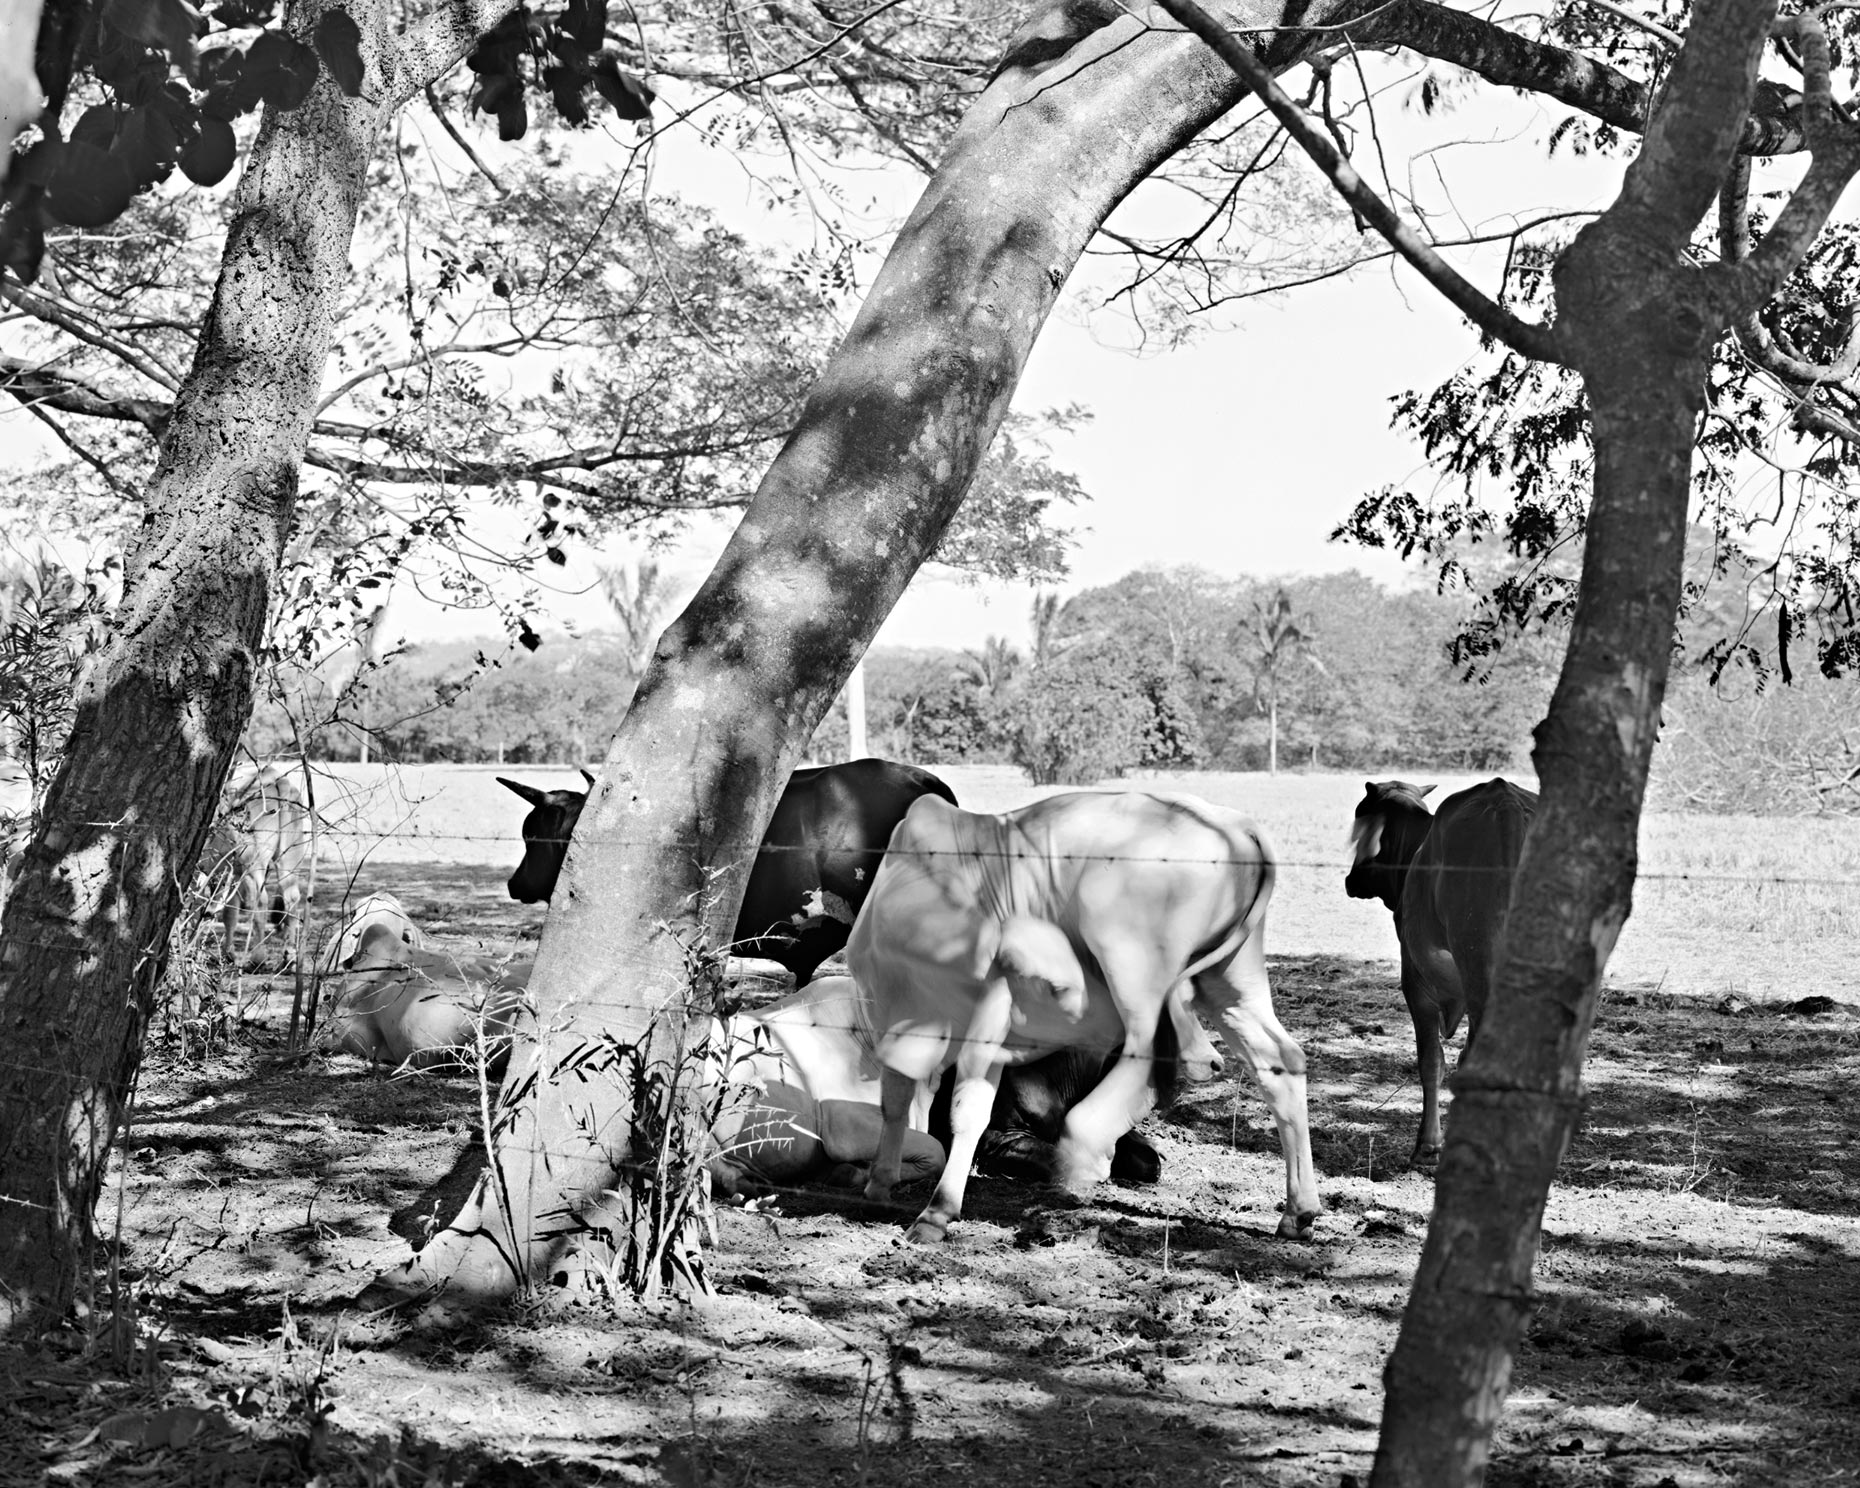 Michael Gaillard  |  Fine Art Photography  |  Cows in the Shade